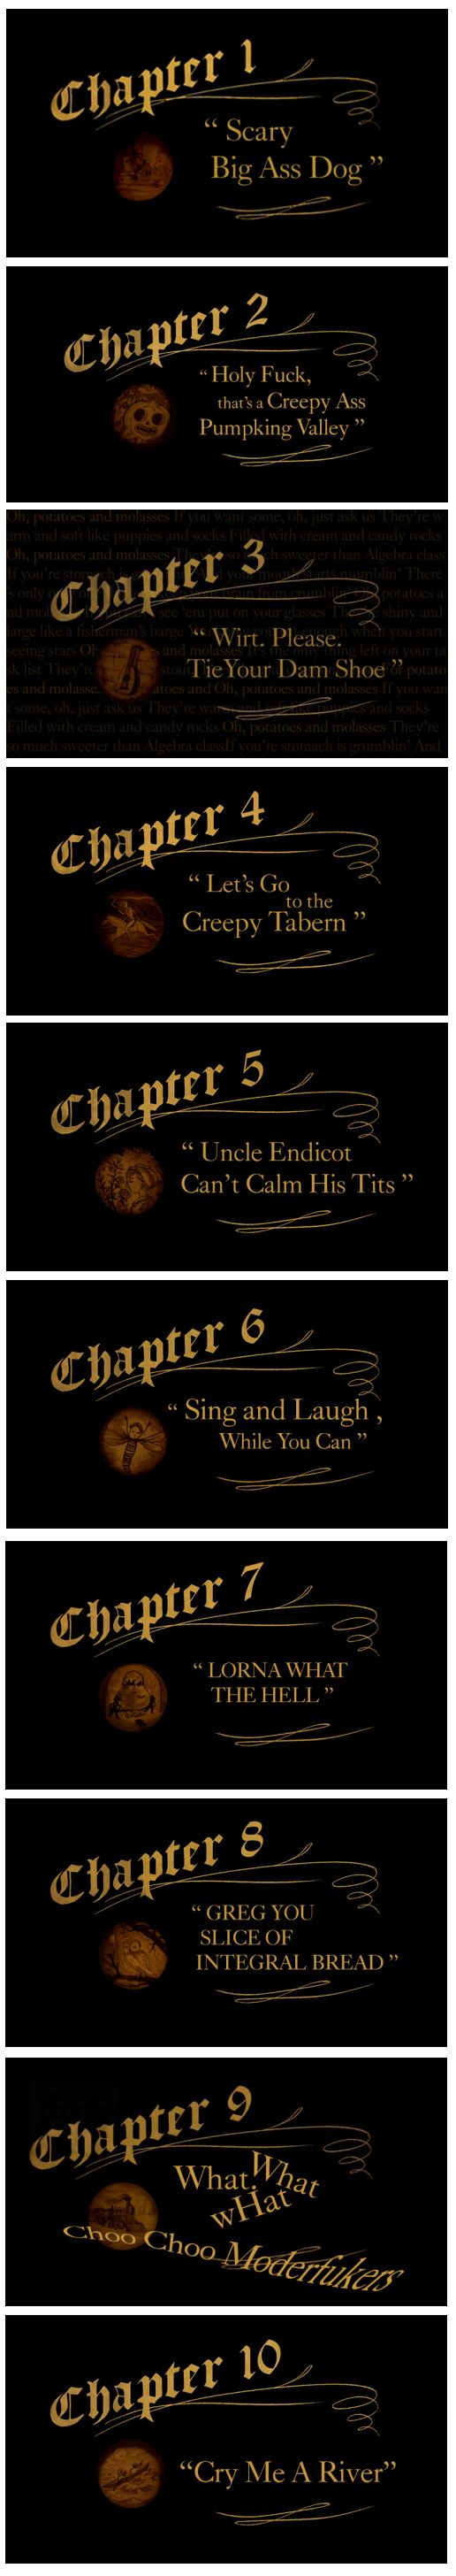 Over The Garden Wall Le Card As How Episodes Would Have Been Named Based On